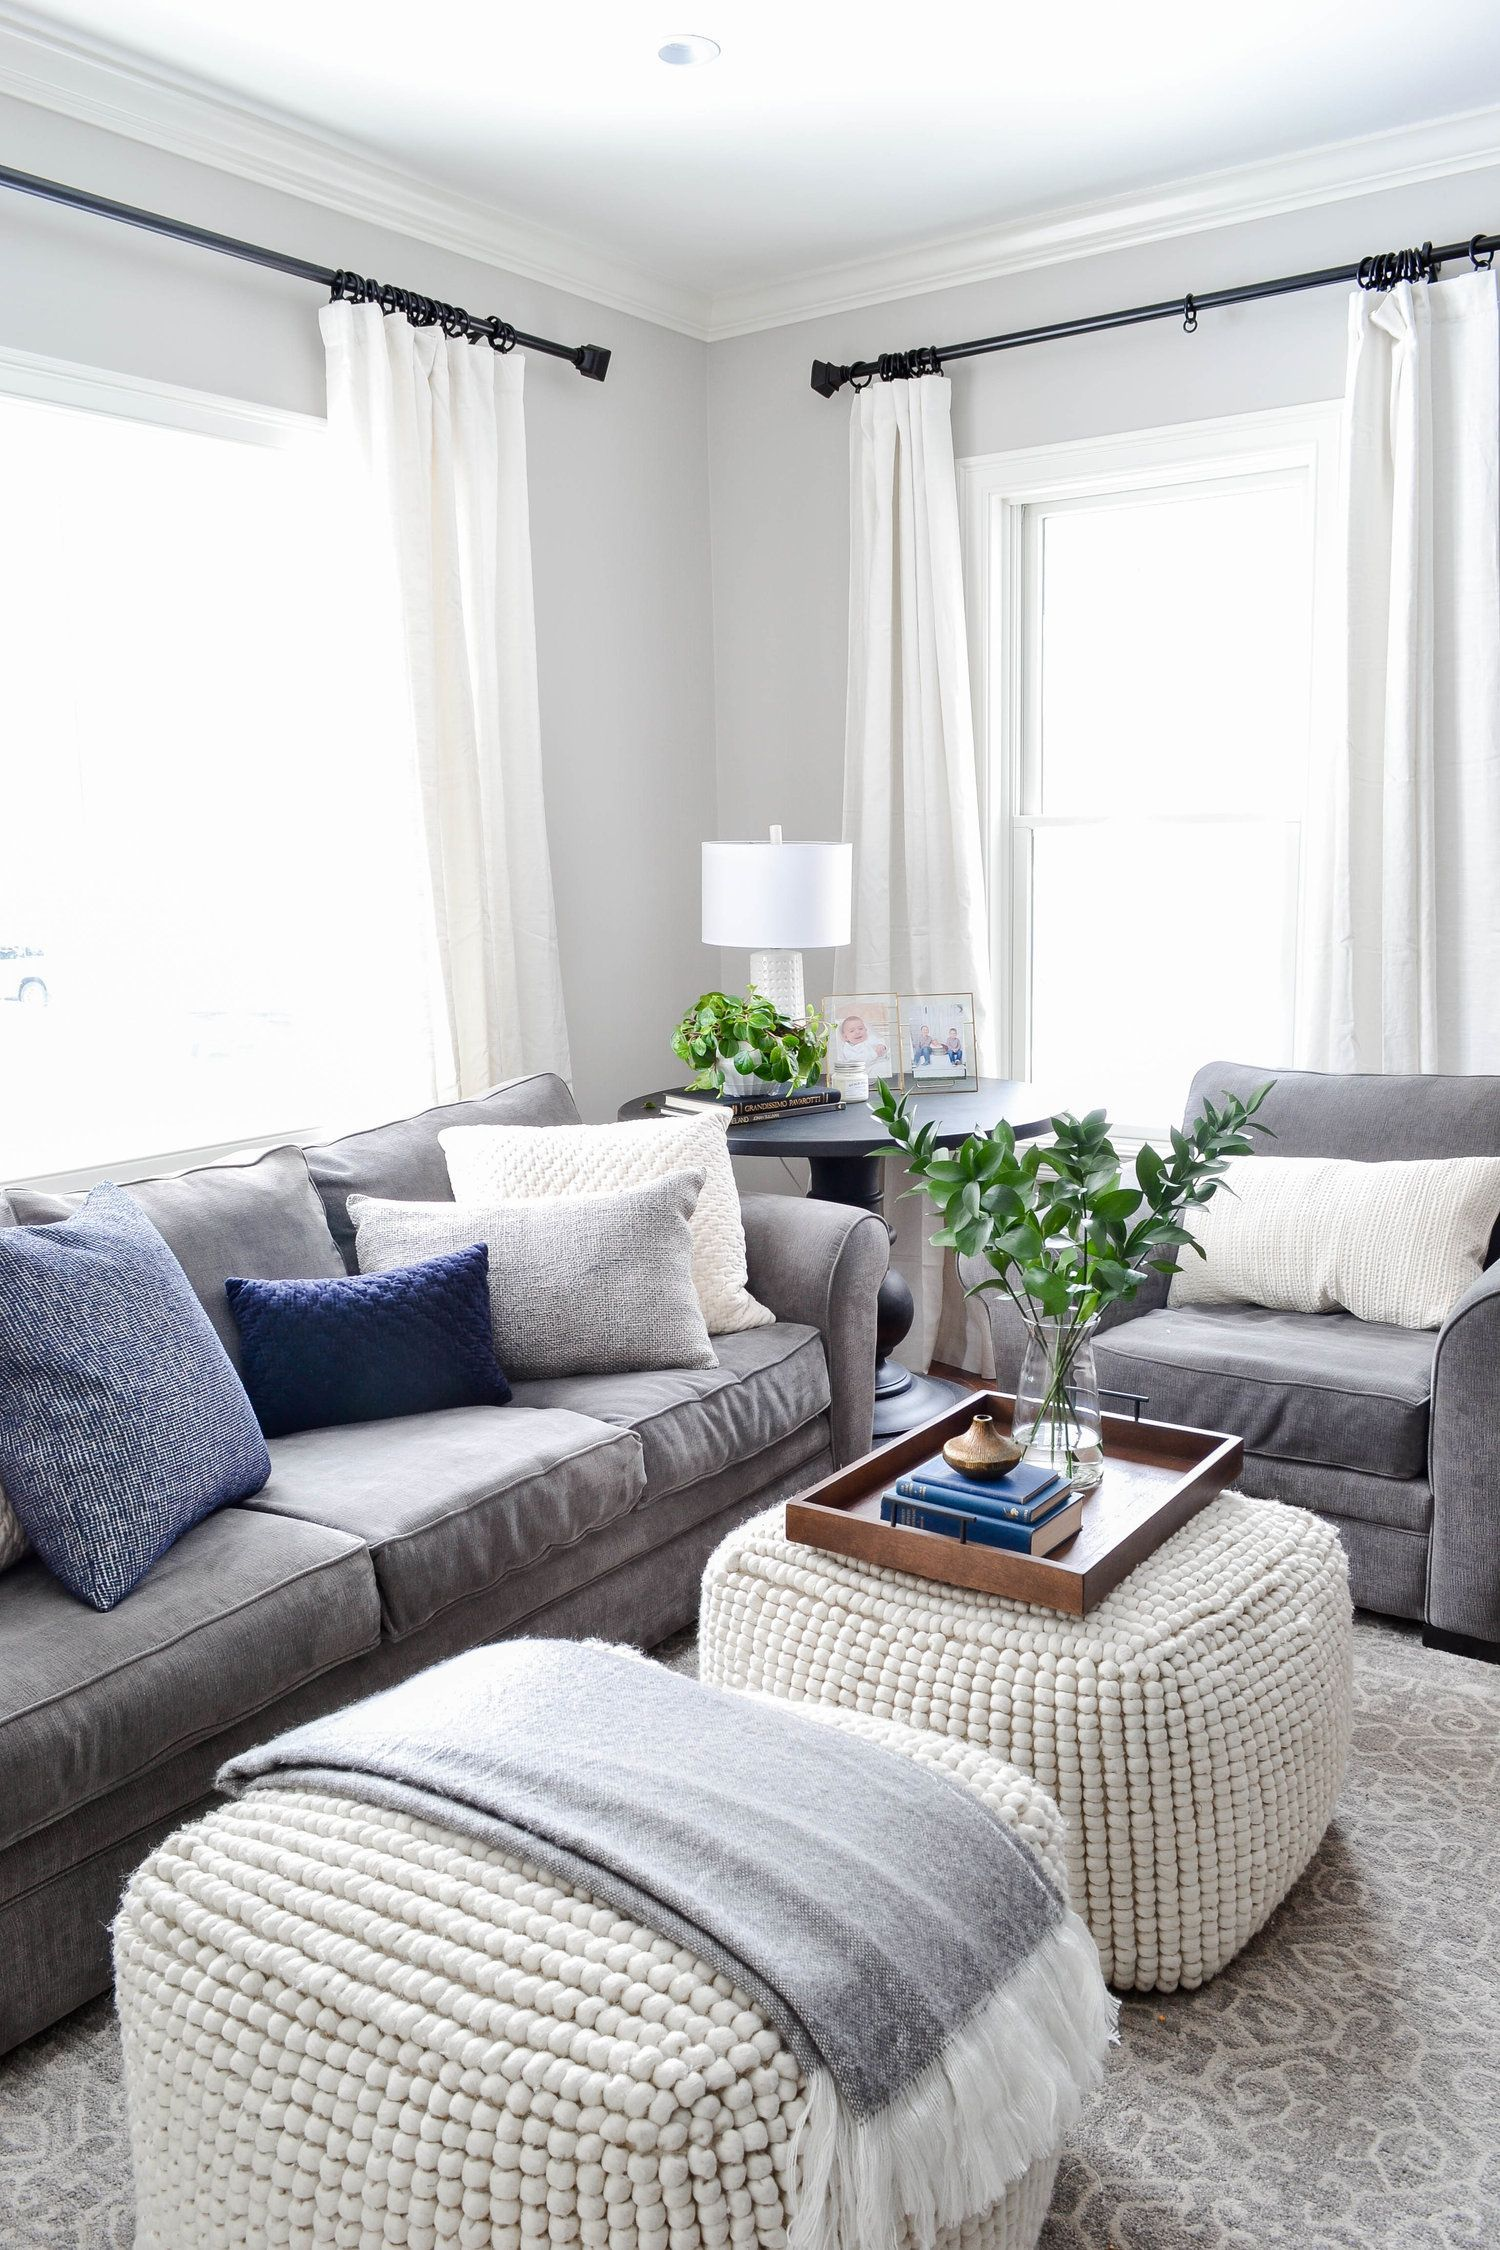 30 Stylish Gray Living Room Ideas To Inspire You Modern Grey Living Room Living Room Grey Couches Living Room